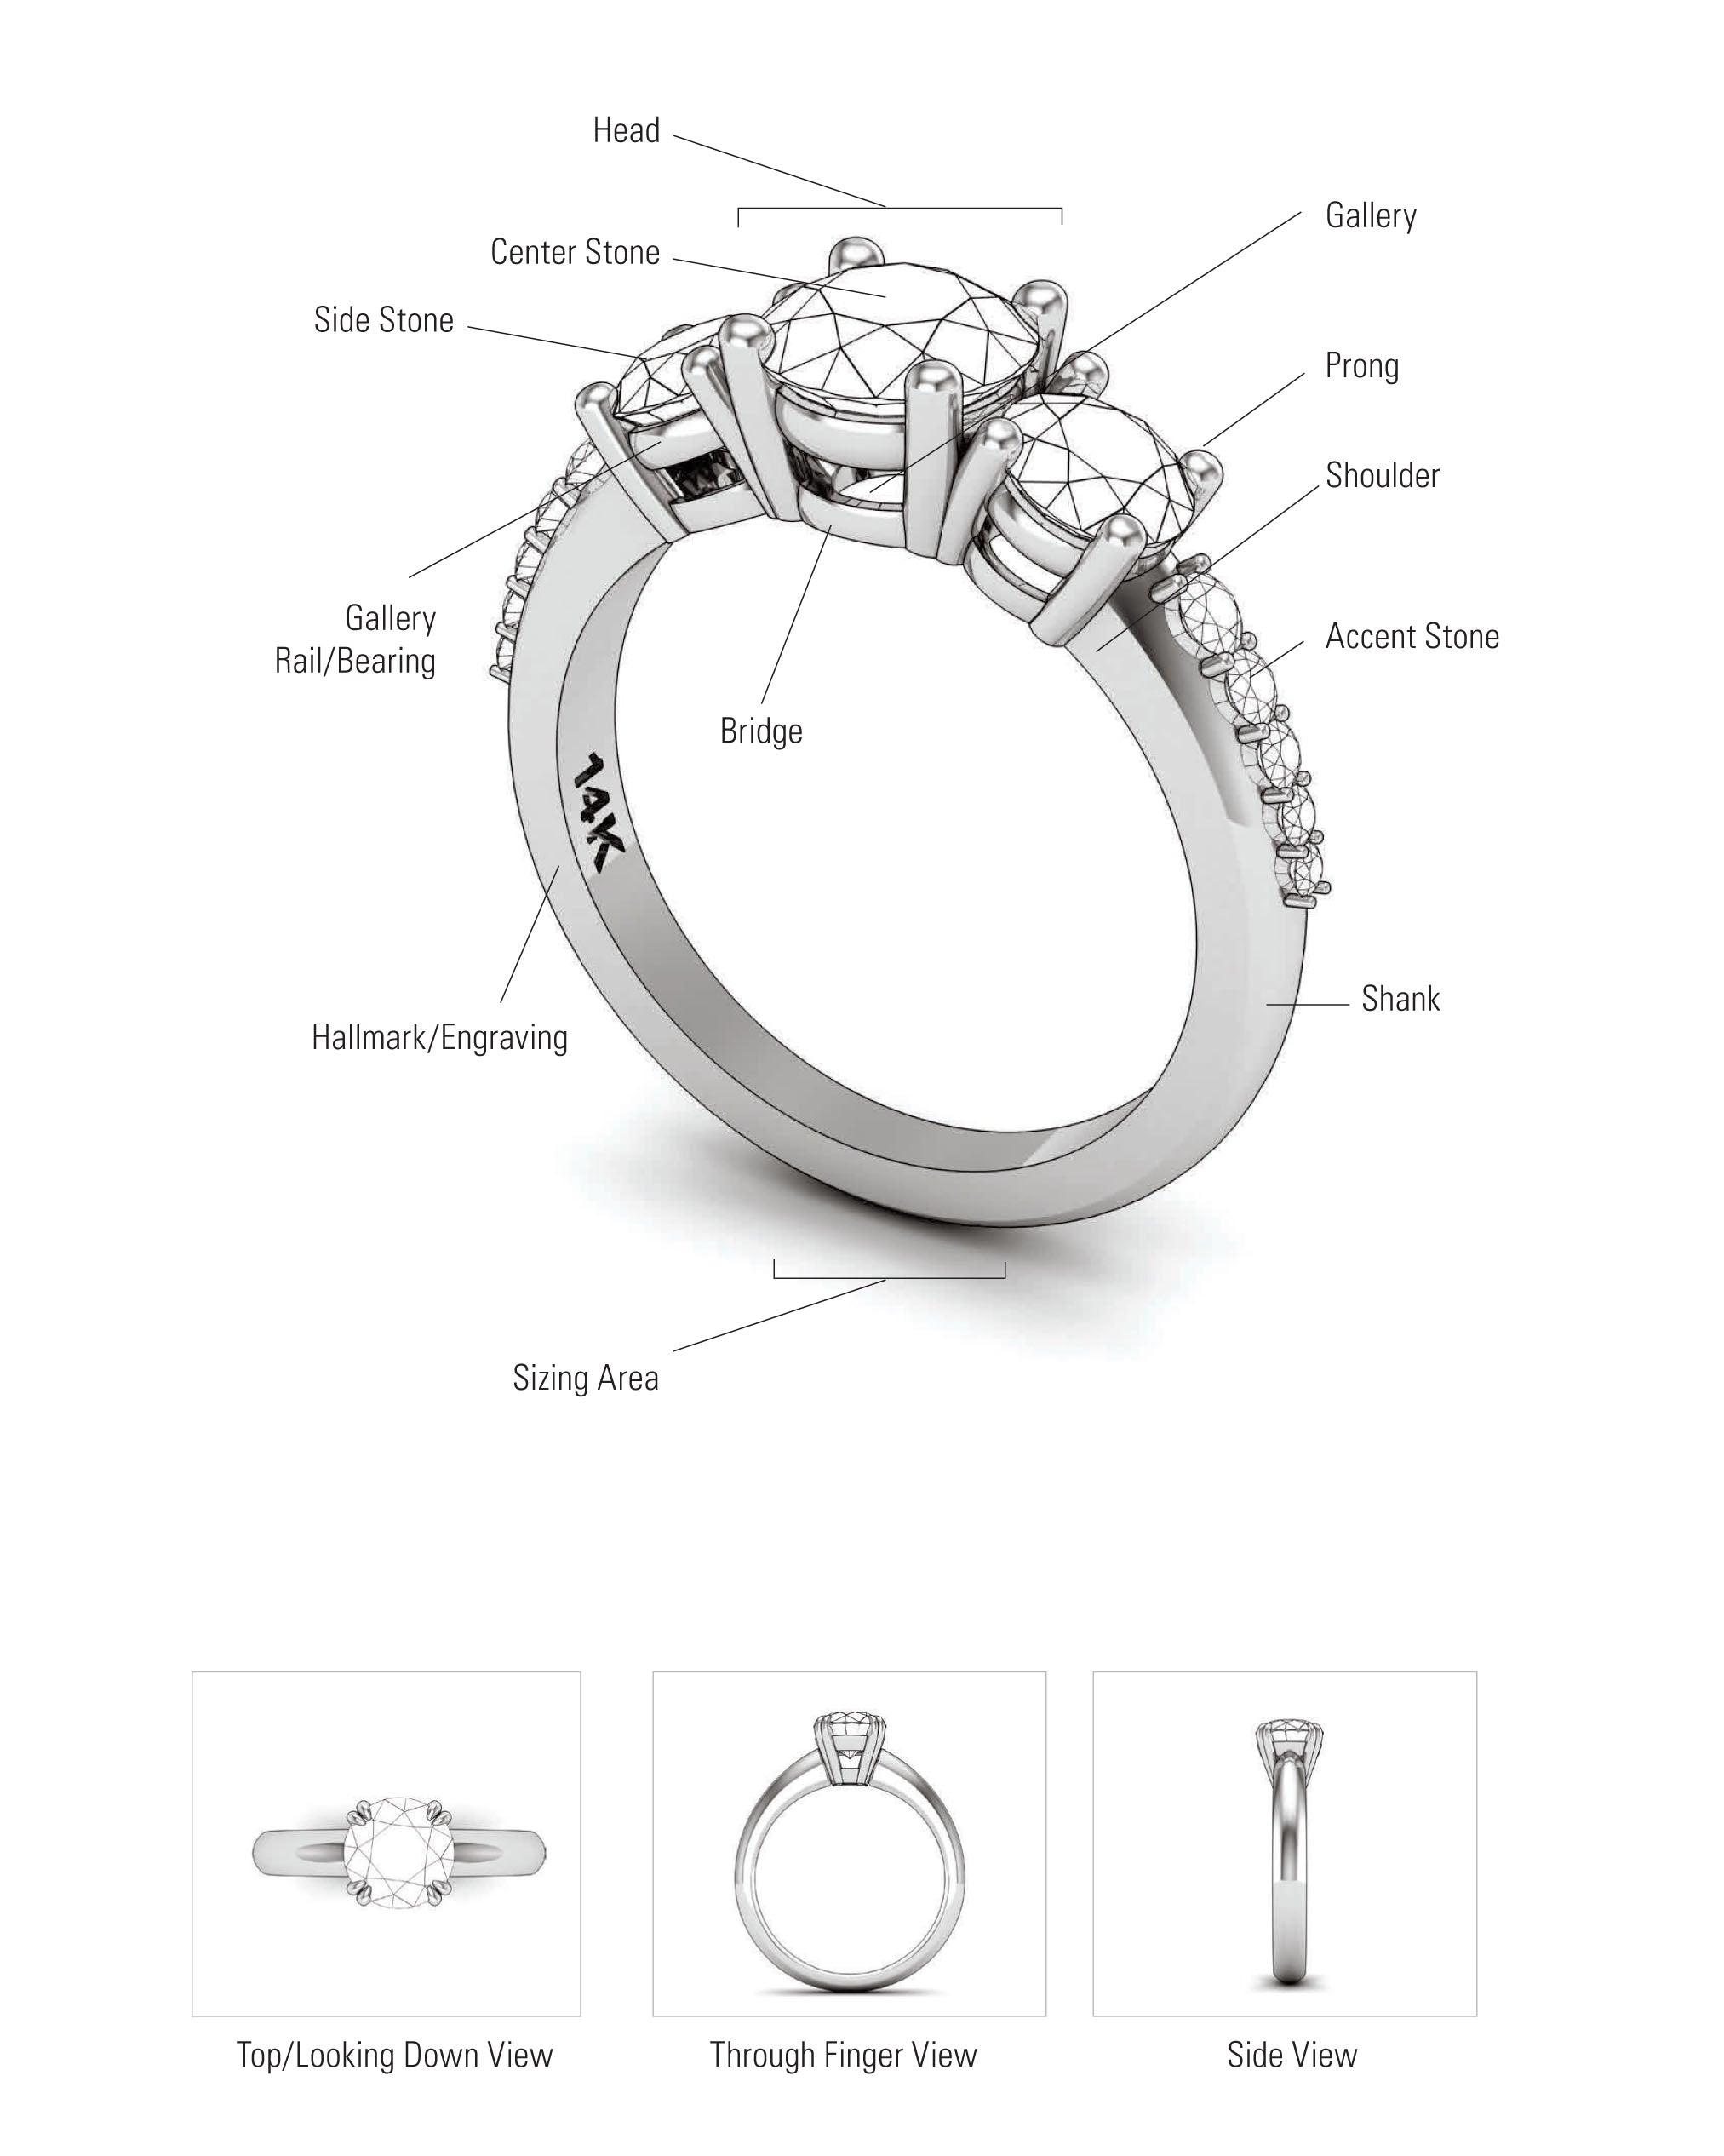 The Parts of a Ring